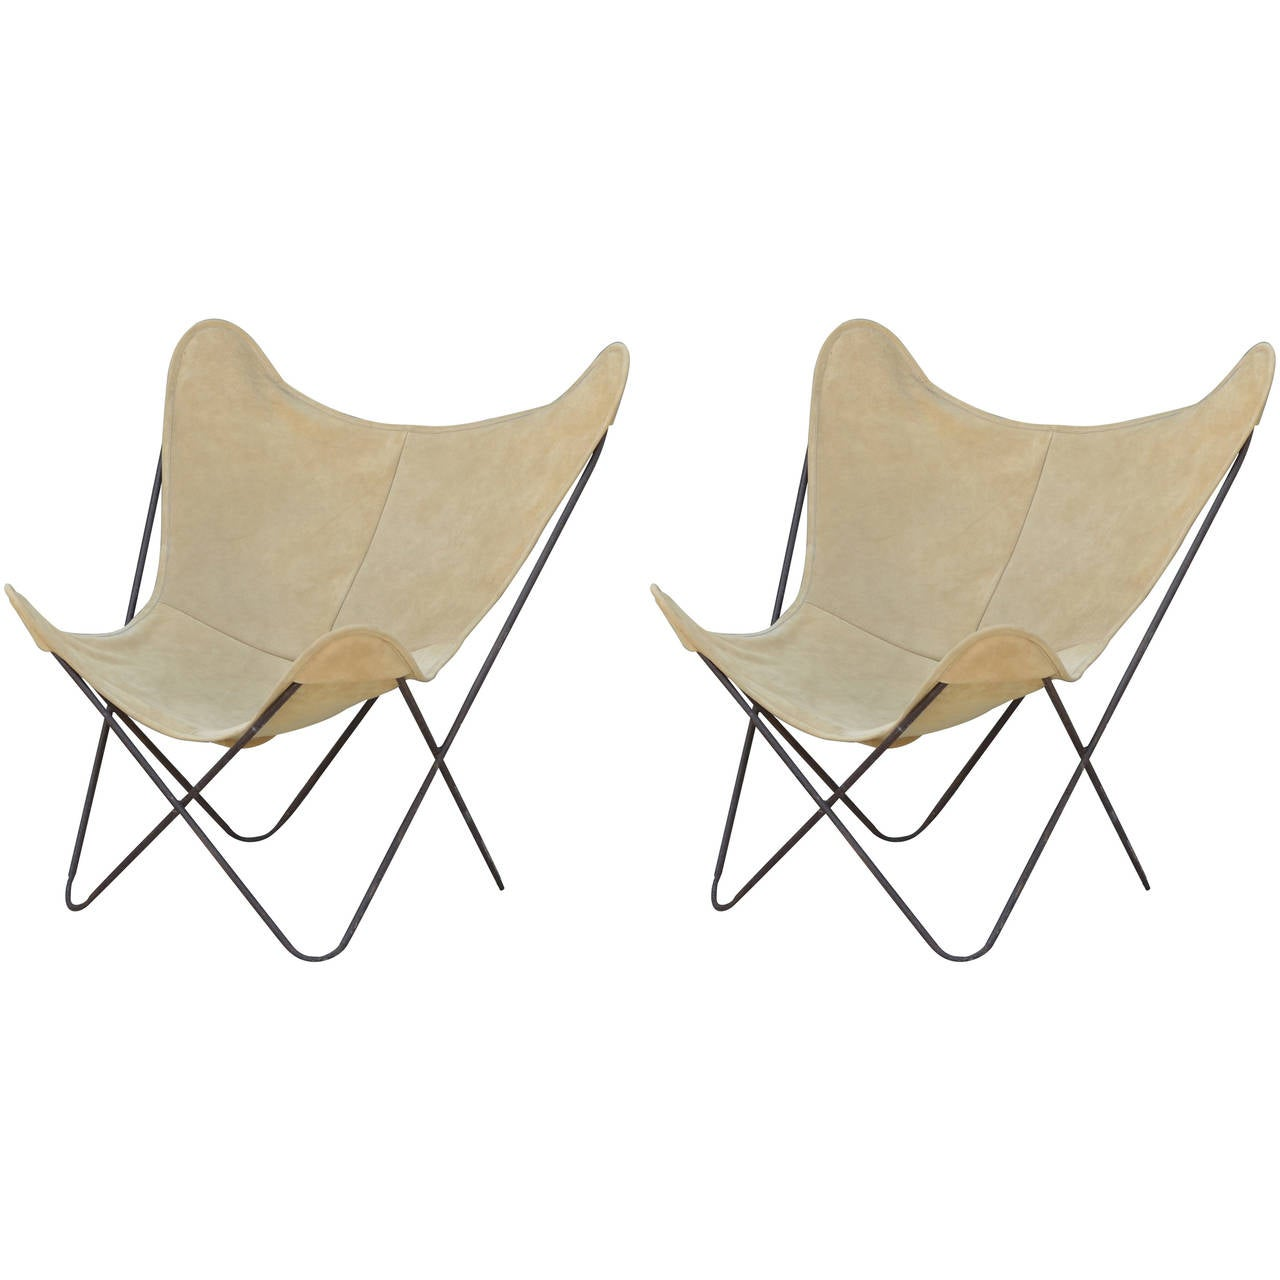 Butterfly chair original - Pair Of Original Vintage Hardoy Butterfly Chairs In Suede 1